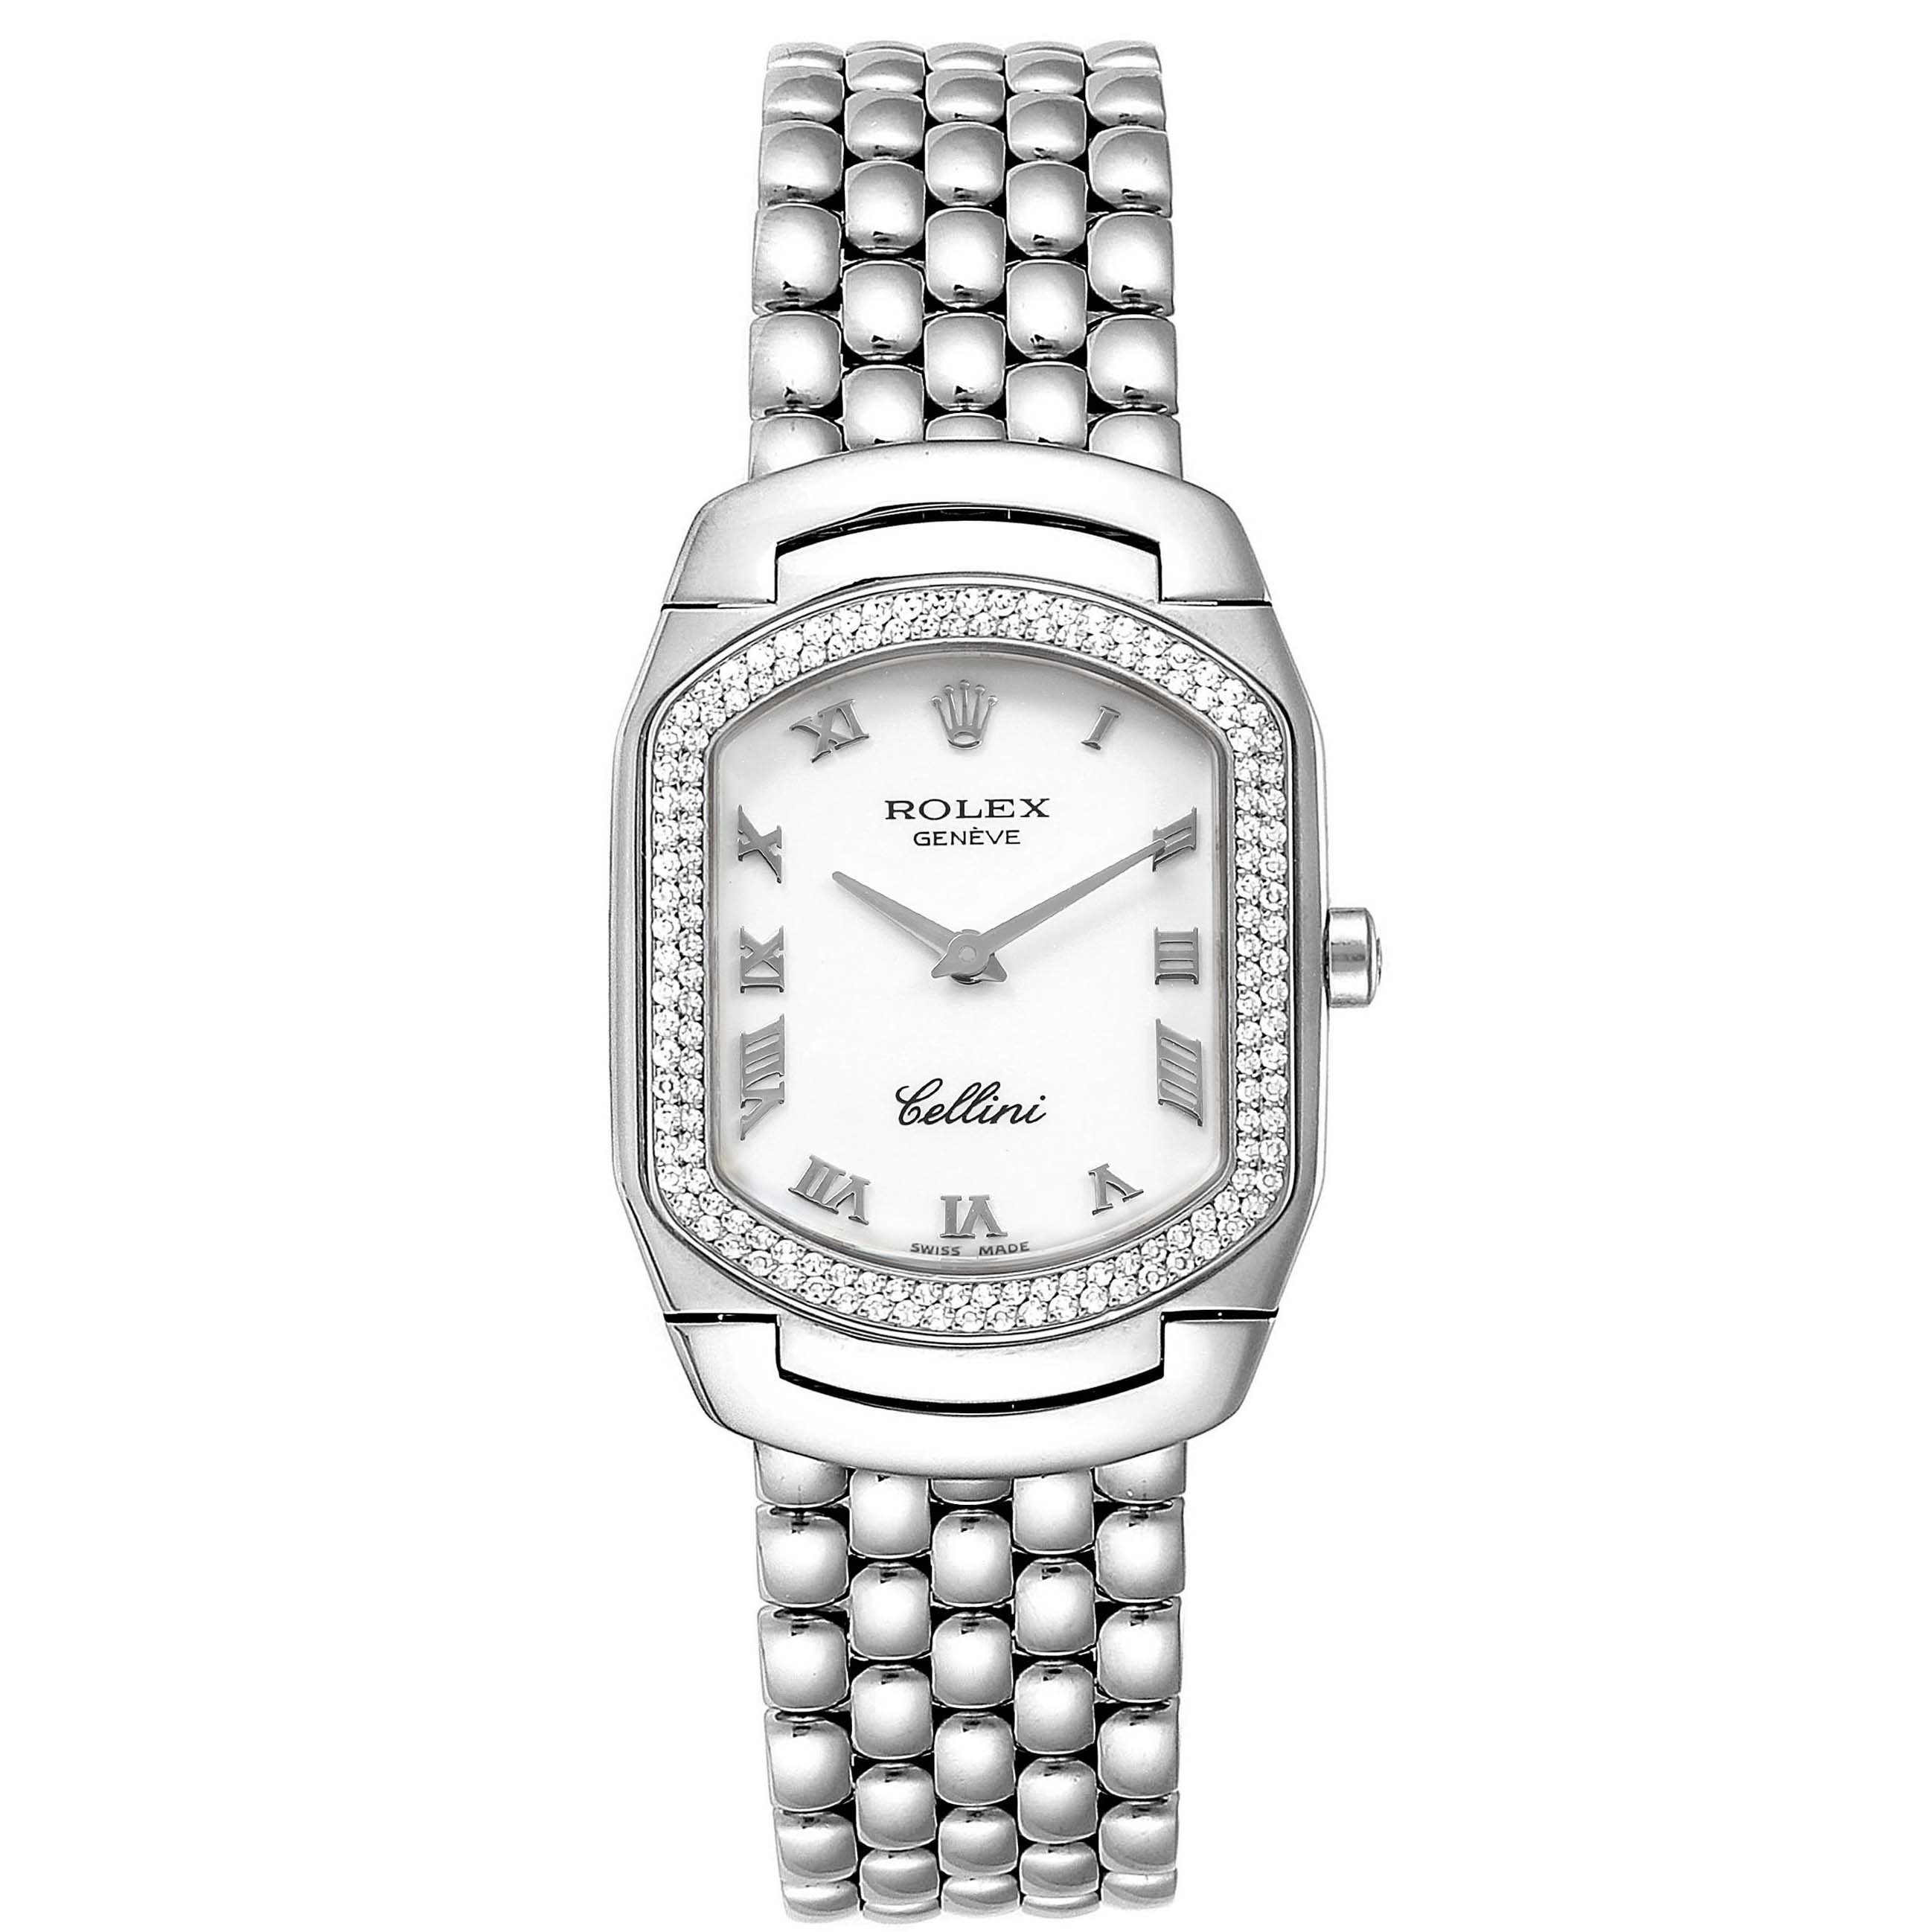 Rolex Cellini Cellissima White Gold Diamond Ladies Watch 6691 SwissWatchExpo